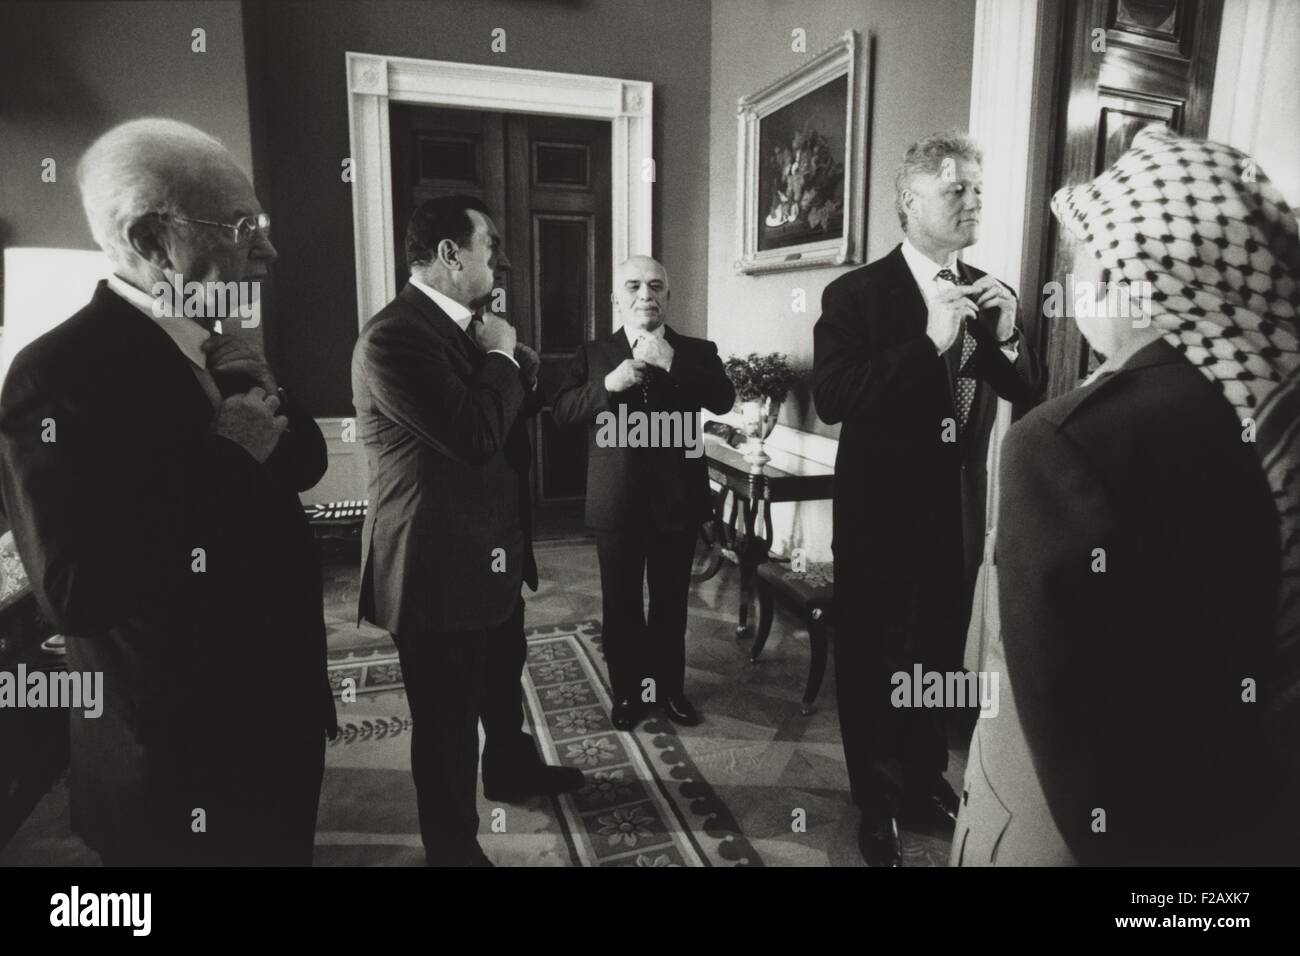 Pres. Clinton and Middle East leaders before signing to extend Palestinian rule on the West Bank. Yitzhak Rabin, - Stock Image